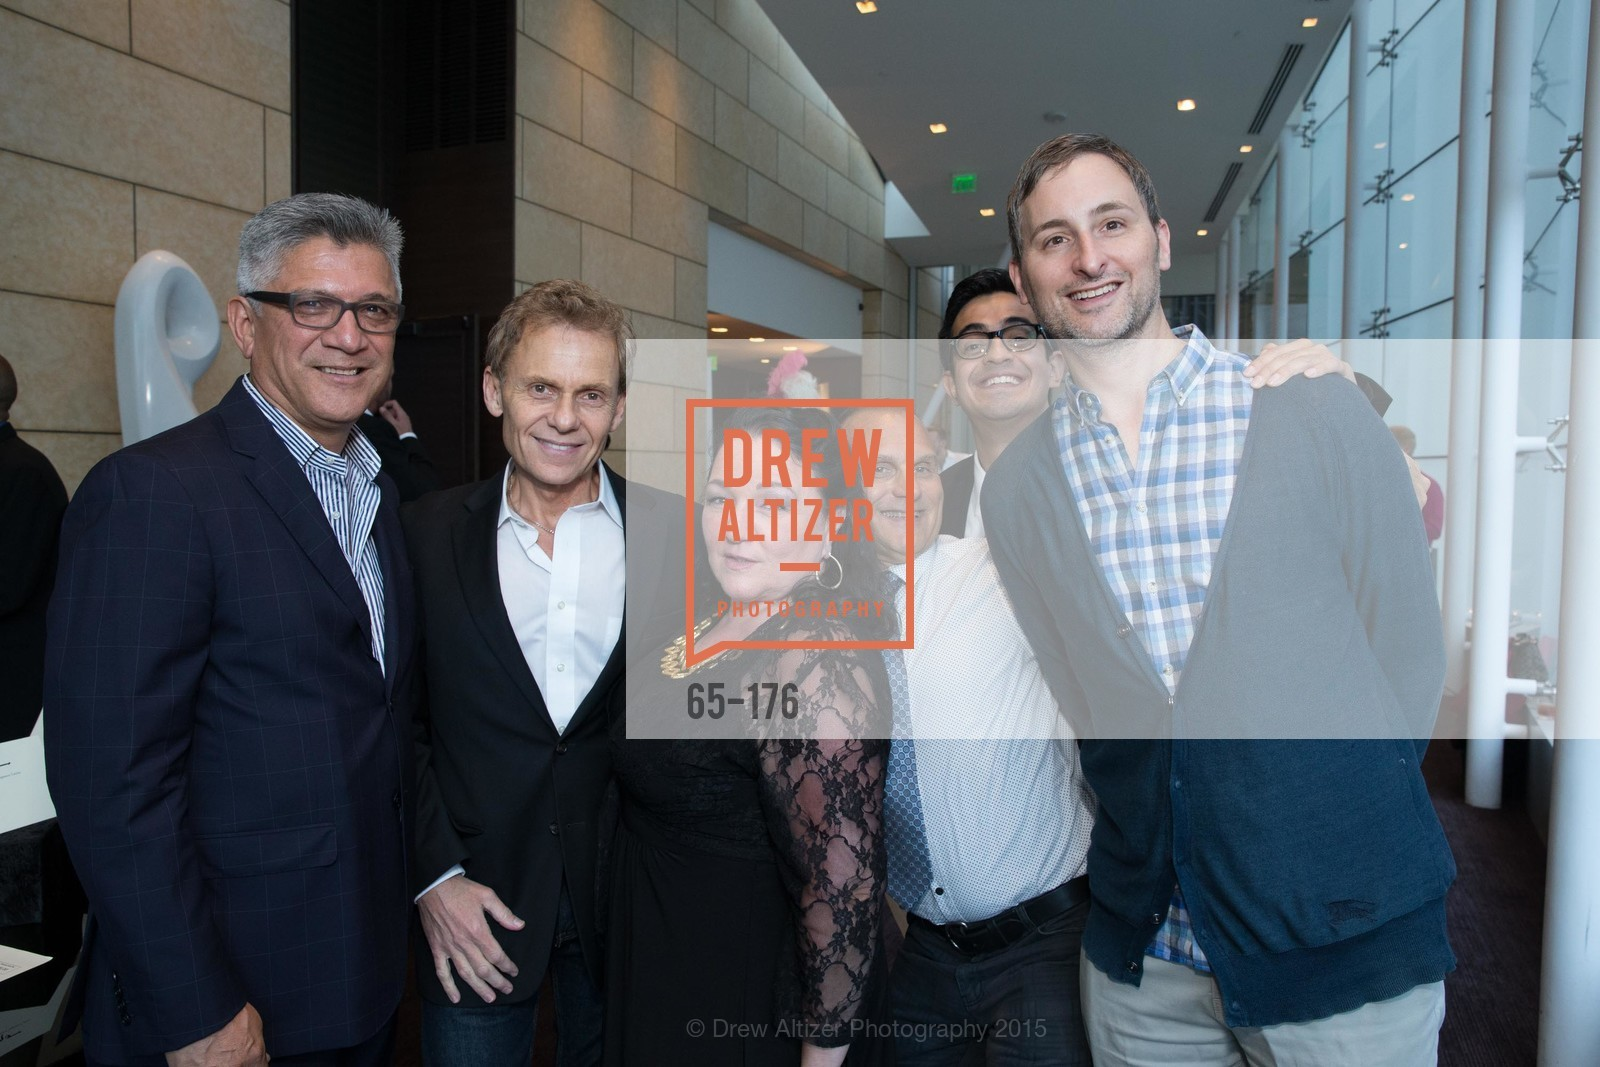 Mario Diaz, Joe Seiler, Kimberly Hathaway, Douglas Hudson, David Grabstald, VIP Pride Celebration 2015, St. Regis, June 18th, 2015,Drew Altizer, Drew Altizer Photography, full-service agency, private events, San Francisco photographer, photographer california